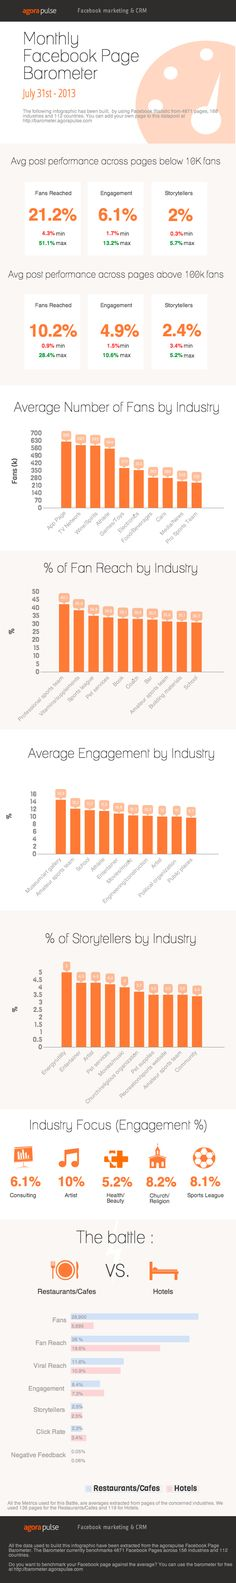 Most Facebook page marketers know that on average, their posts will reach about 16 percent of fans. However, that numberfluctuates based on your audience and industry. A comprehensive infographic by AgoraPulse shows that in July, Facebook pages with fewer than 10,000 fans actually reached 21.2 percent of their fanbase.